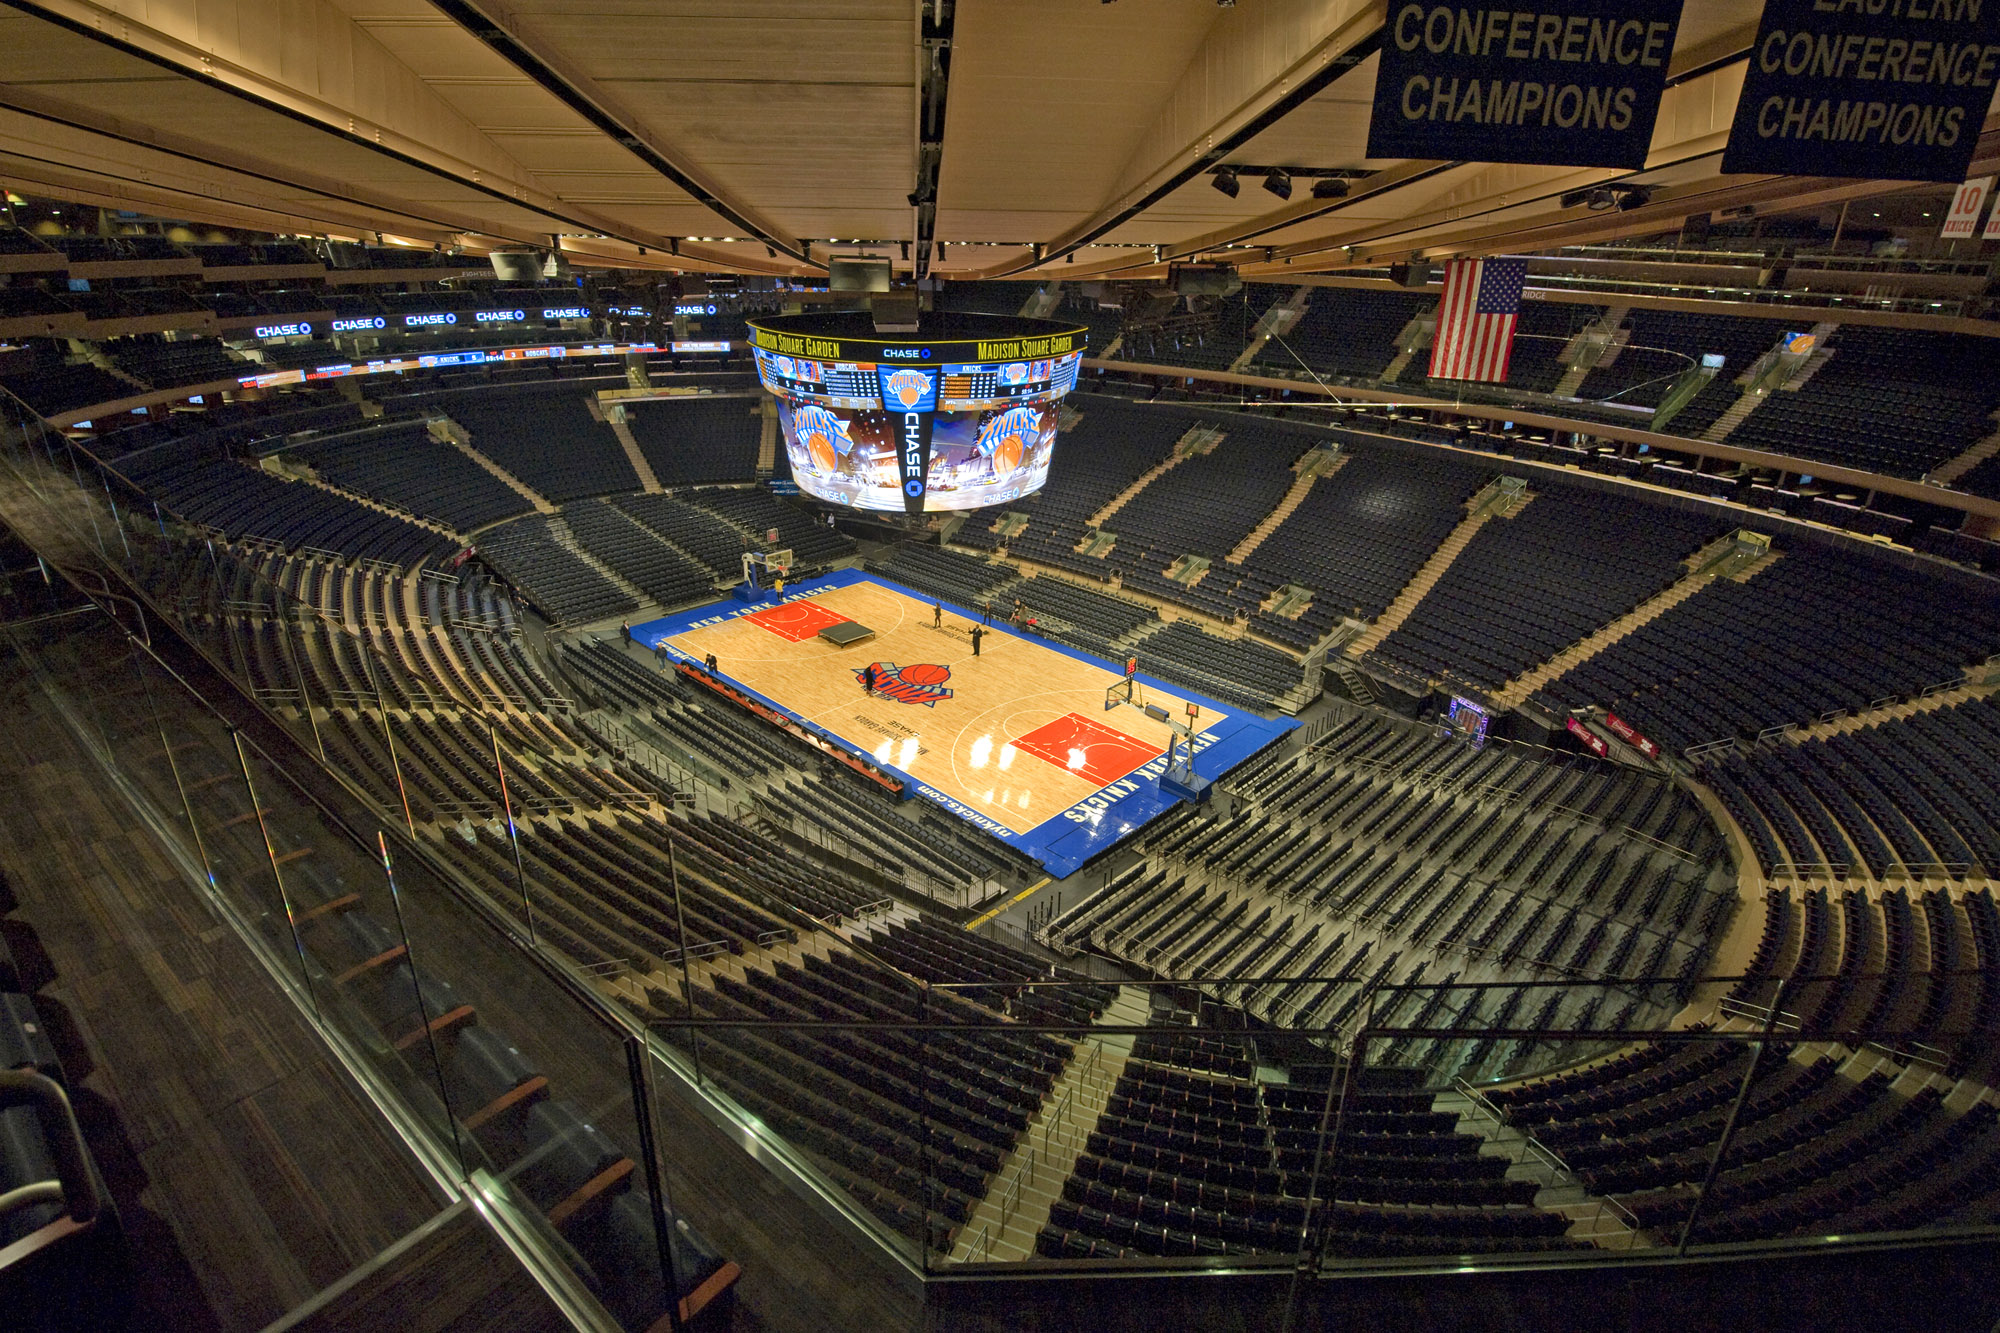 Year-long payment card breach discovered at Madison Square Garden